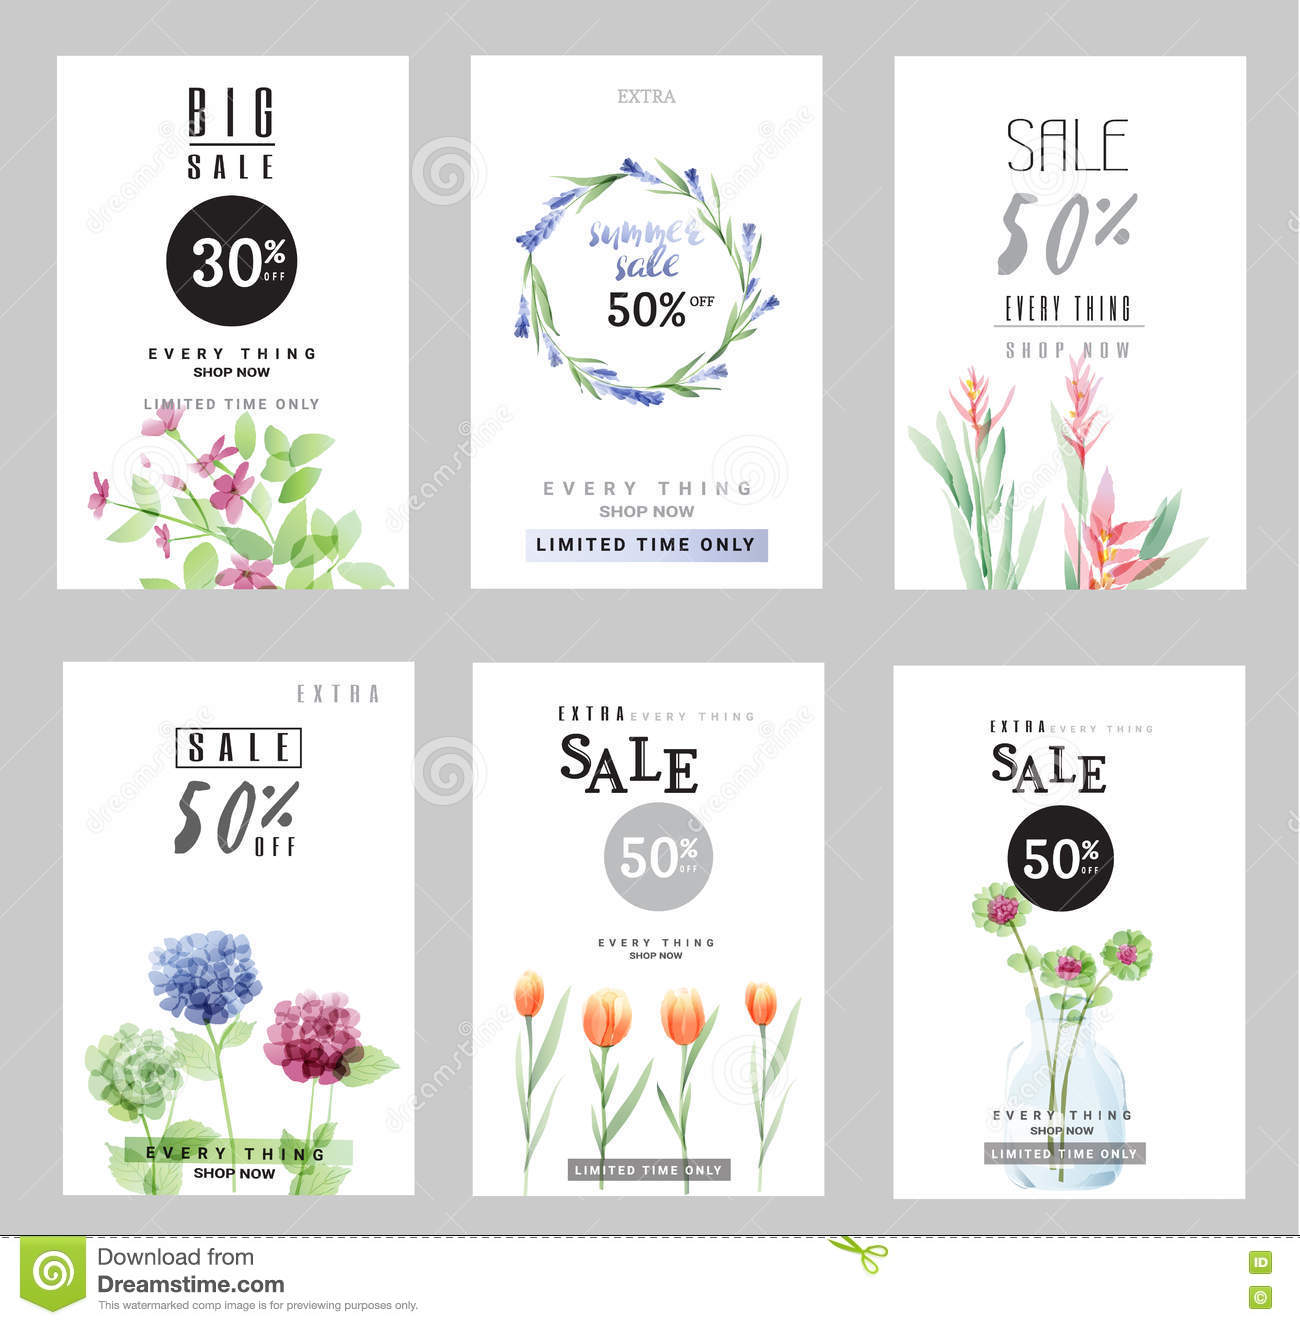 release social media and on line retail Media kit templates boost your brand and business with an impressive information packet made from one of canva's professionally designed media kit templates.